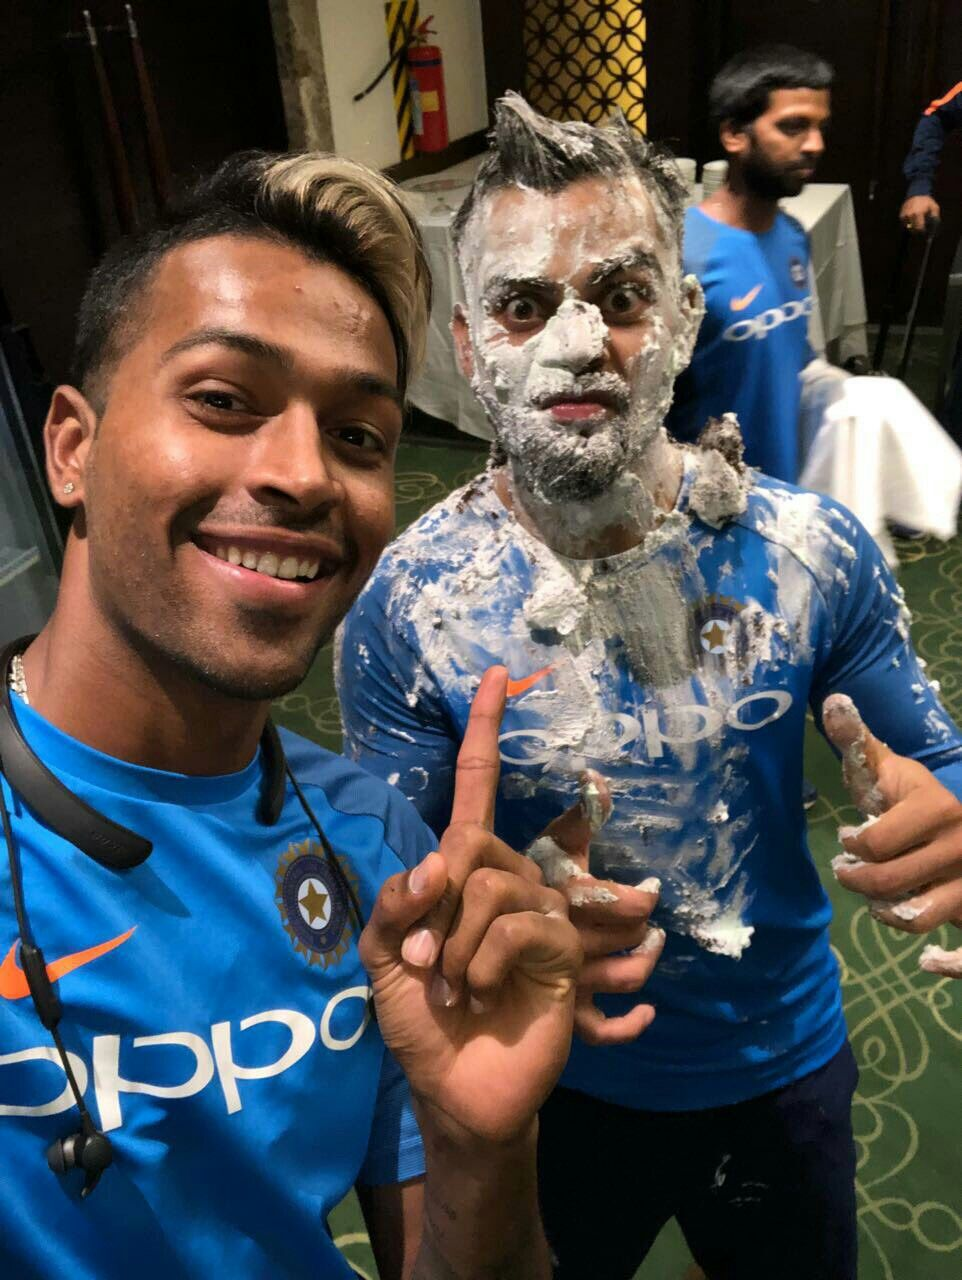 Happy Bday Virat🎂 Photoshoot images, Funny images, No